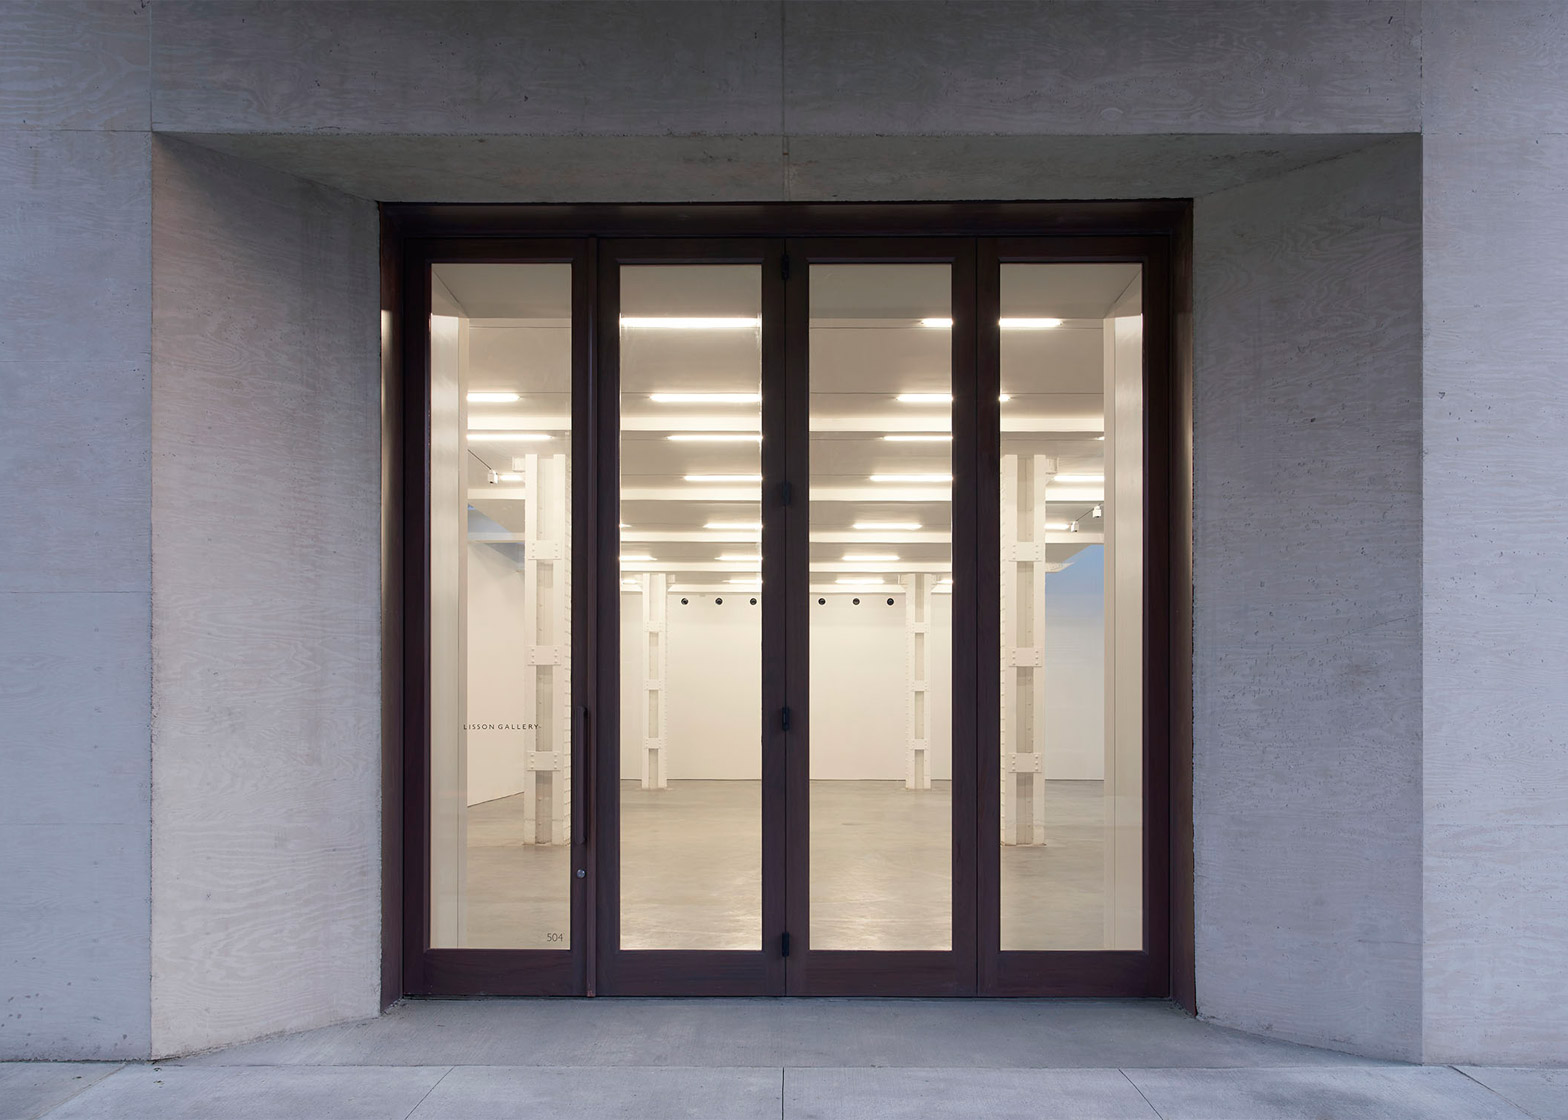 Architecture and Interiors: Lisson Gallery New York by Studio MDA and Studio Christian Wassmann